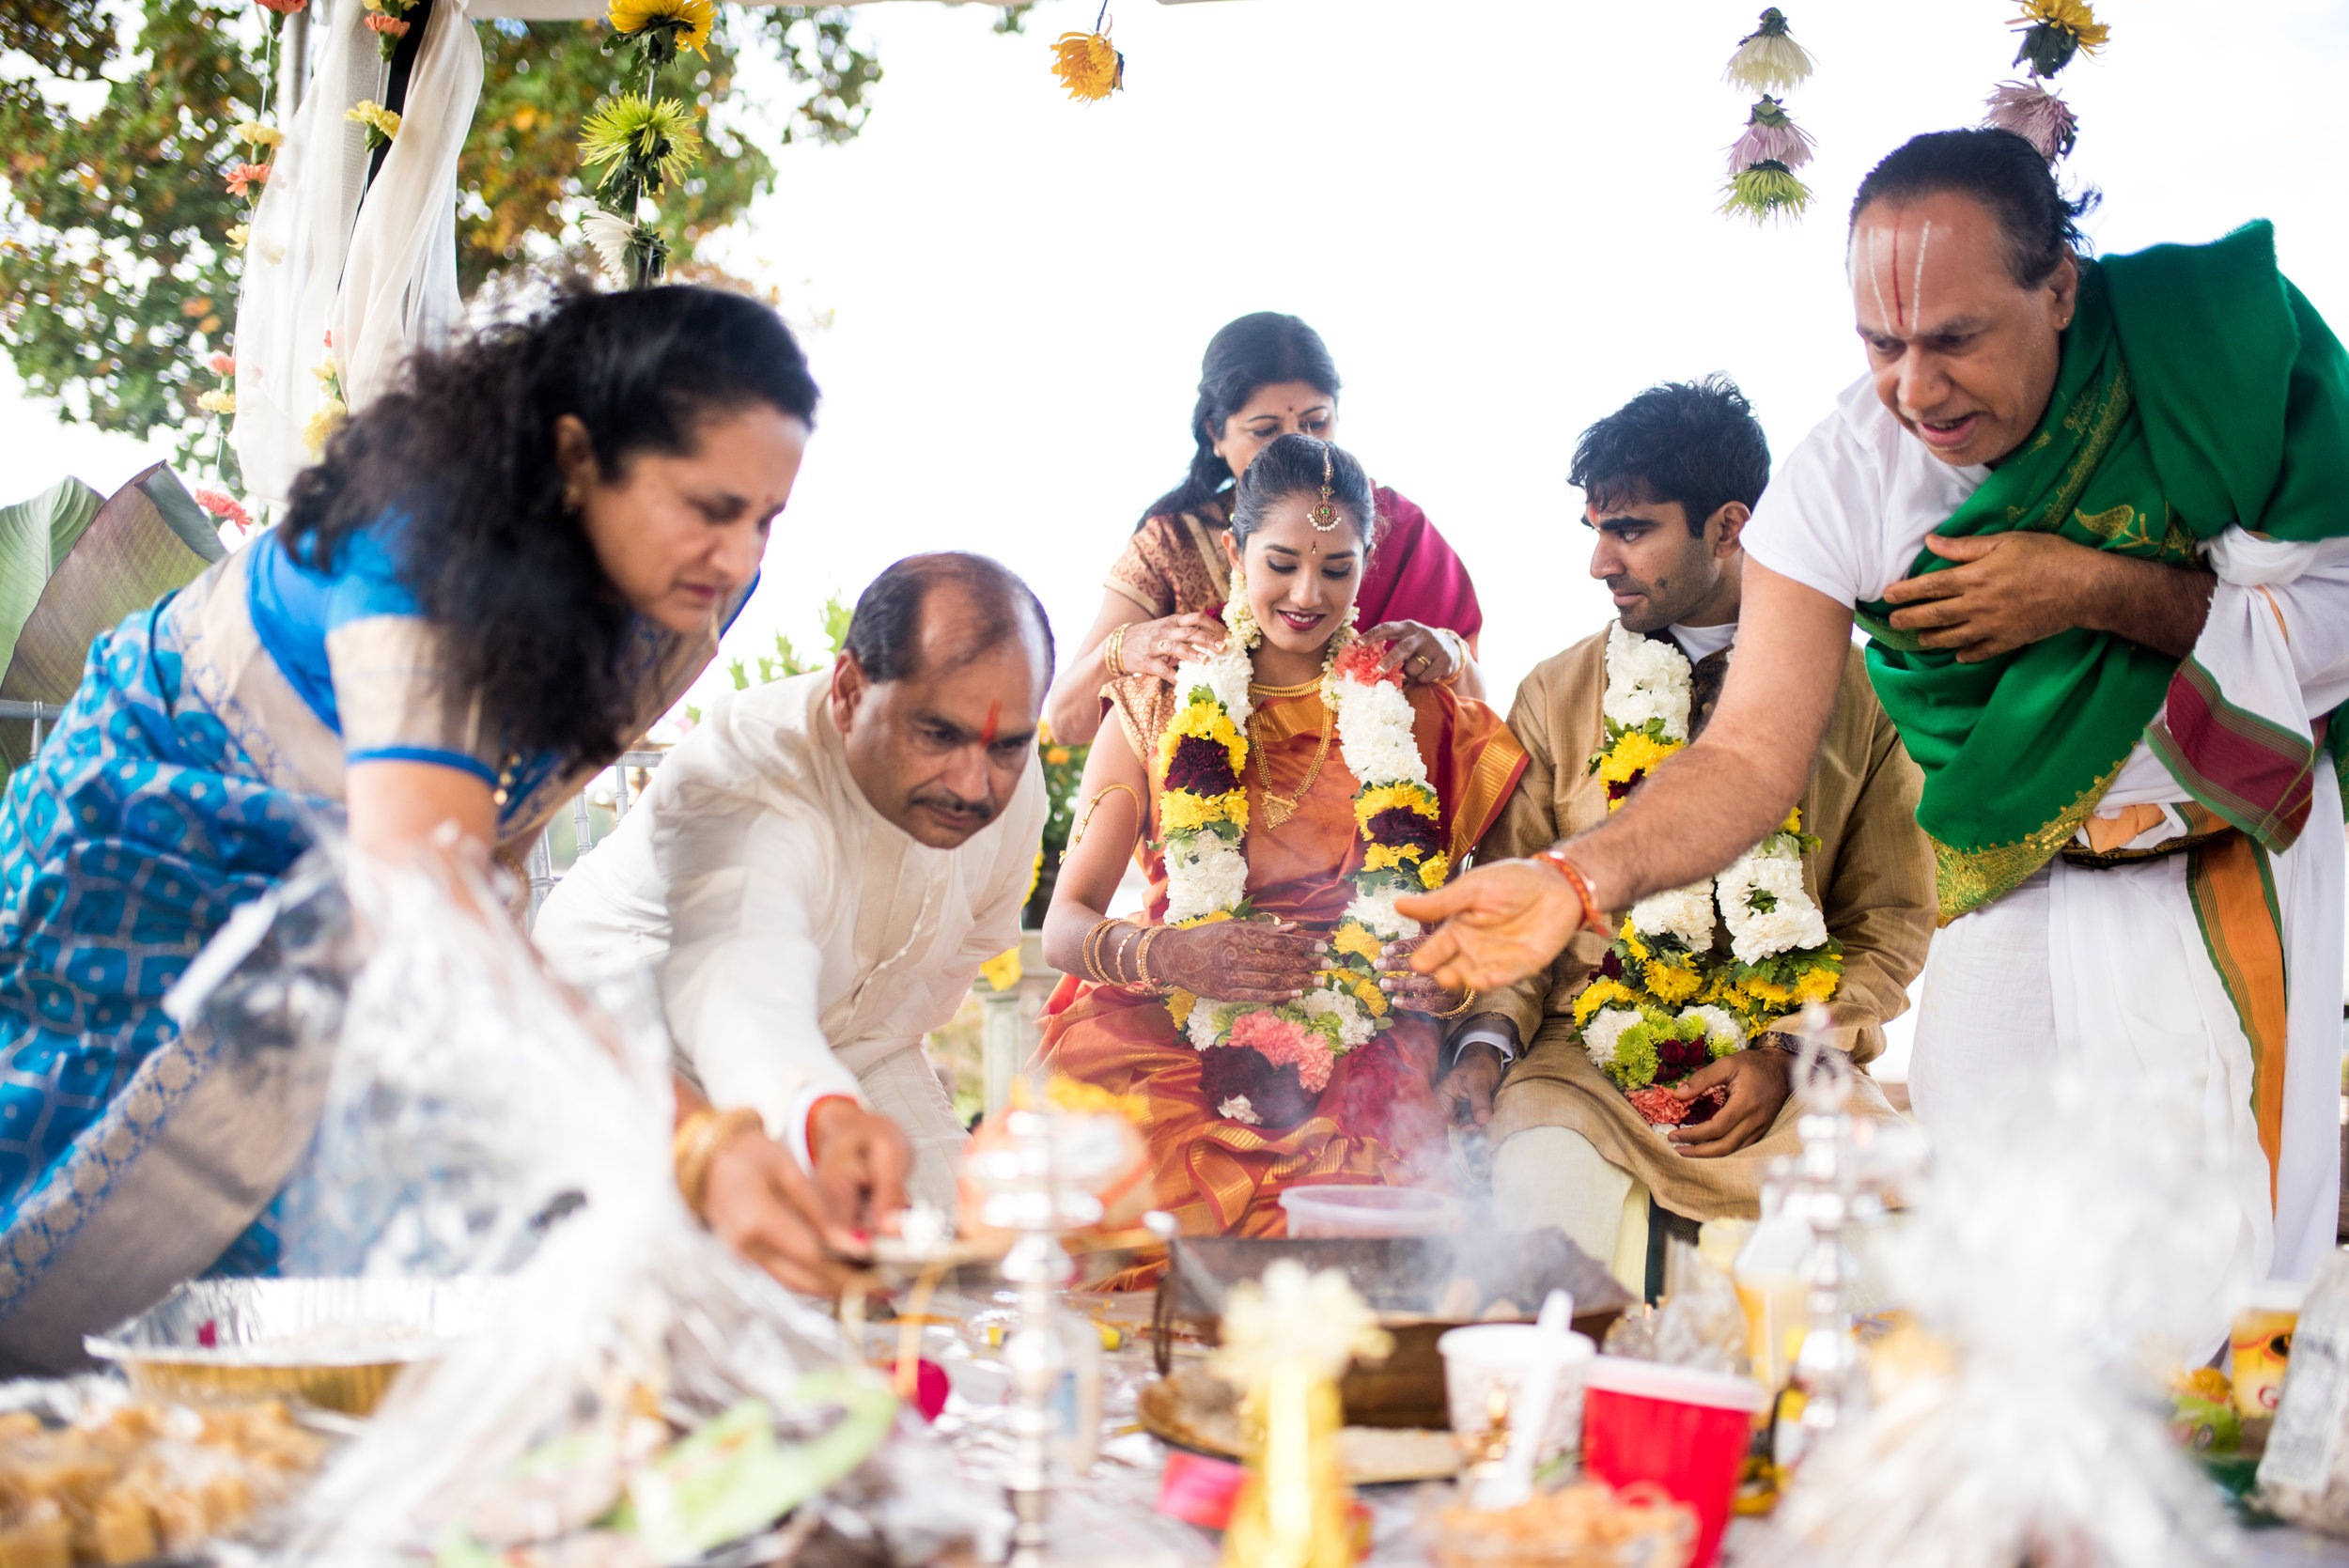 AnjaliArvind-Friday-CeremonySouth-Proof-3600px-130-DSC_4841.jpg